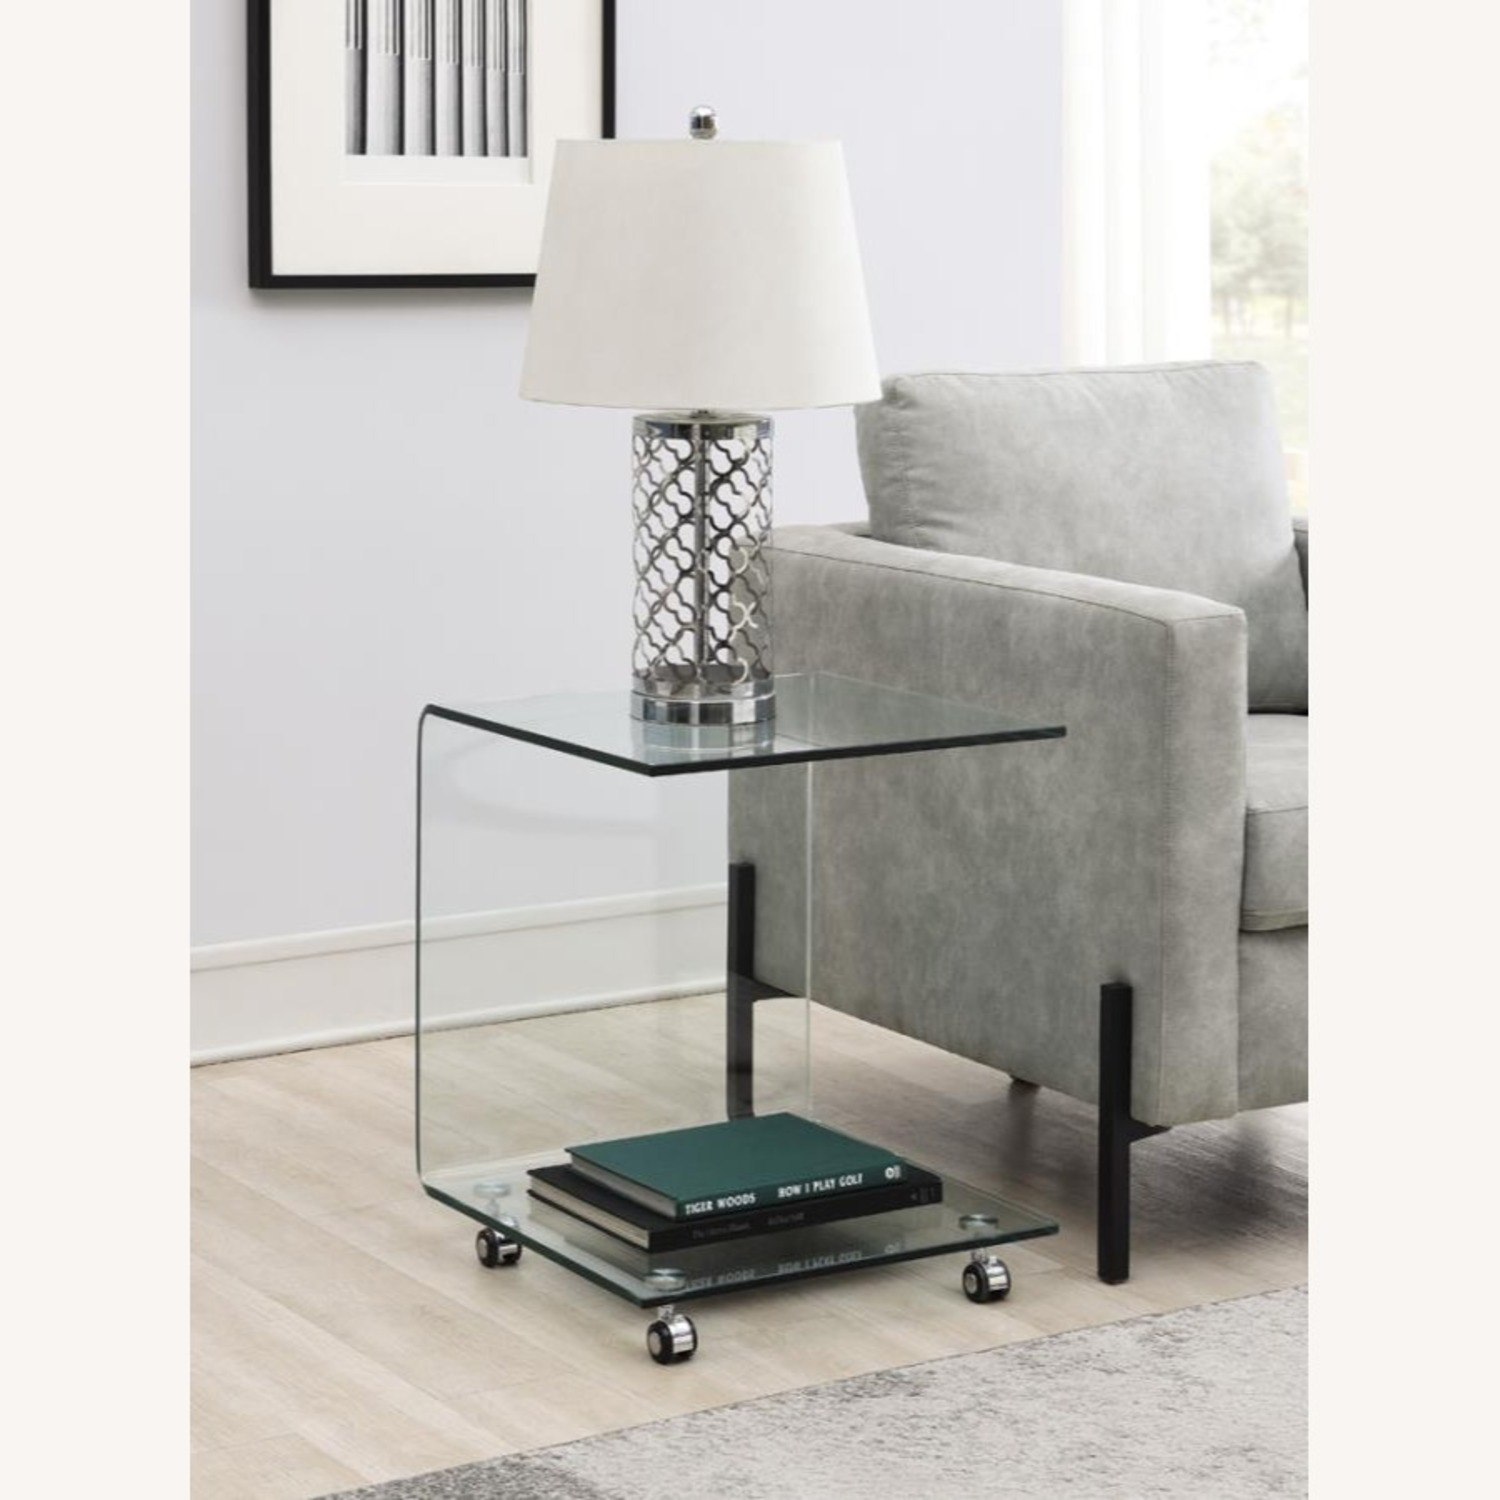 Accent Table In Clear Tempered Glass Finish - image-1